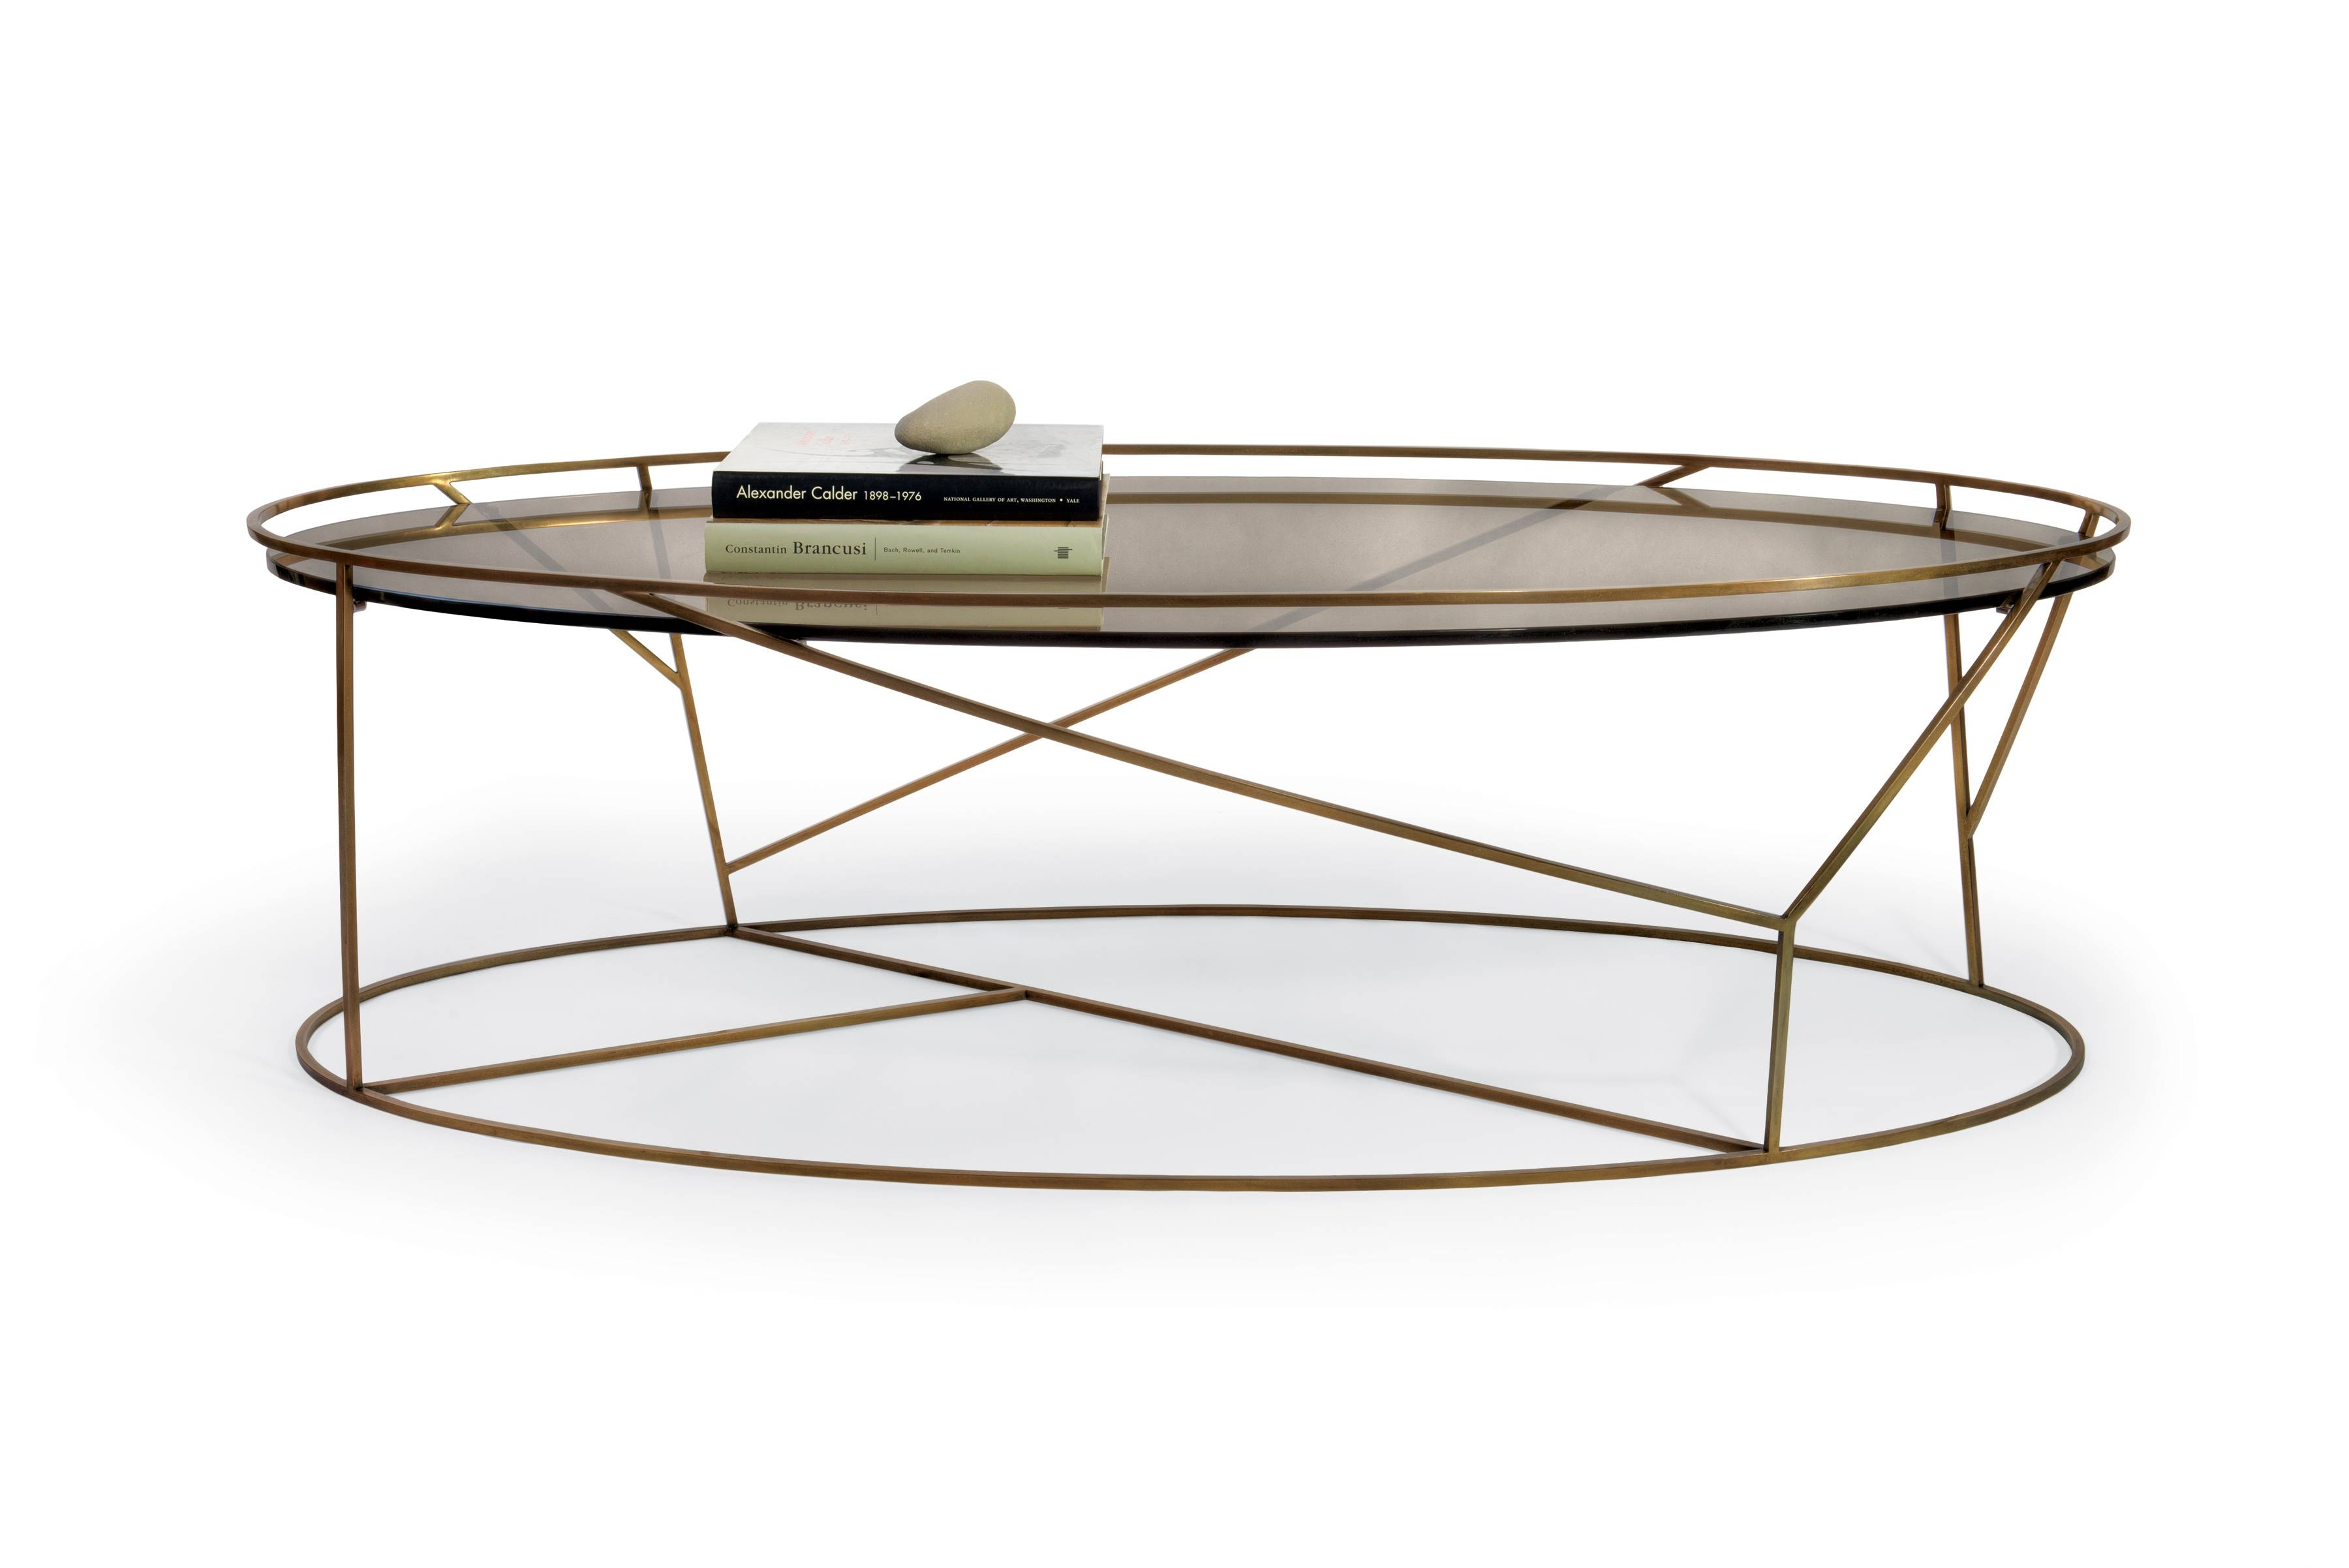 Furniture: Oval Glass Top Coffee Table | Oval Coffee Table Glass For Oval Glass Coffee Tables (View 3 of 30)